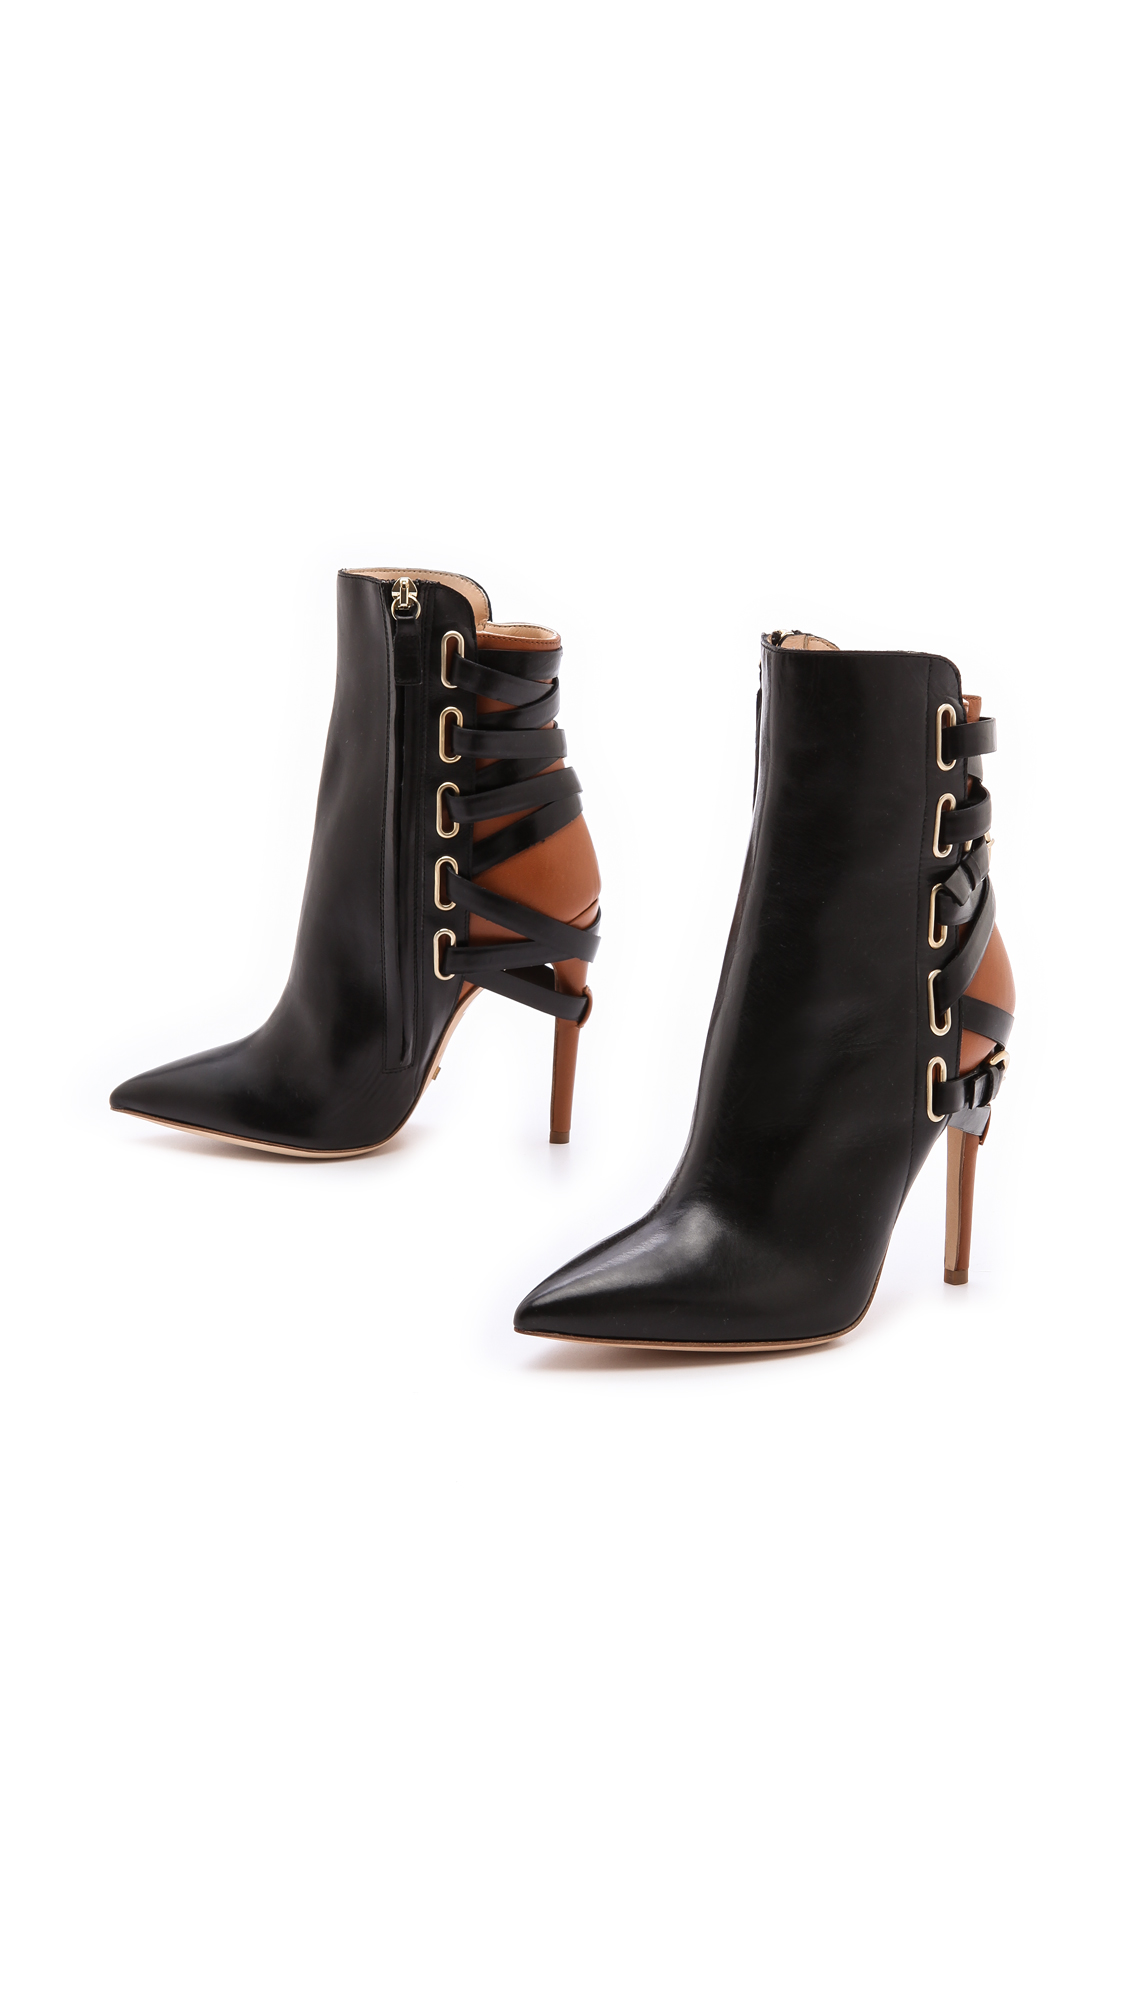 JEROME C ROUSSEAU Jiro Leather Ankle Boot